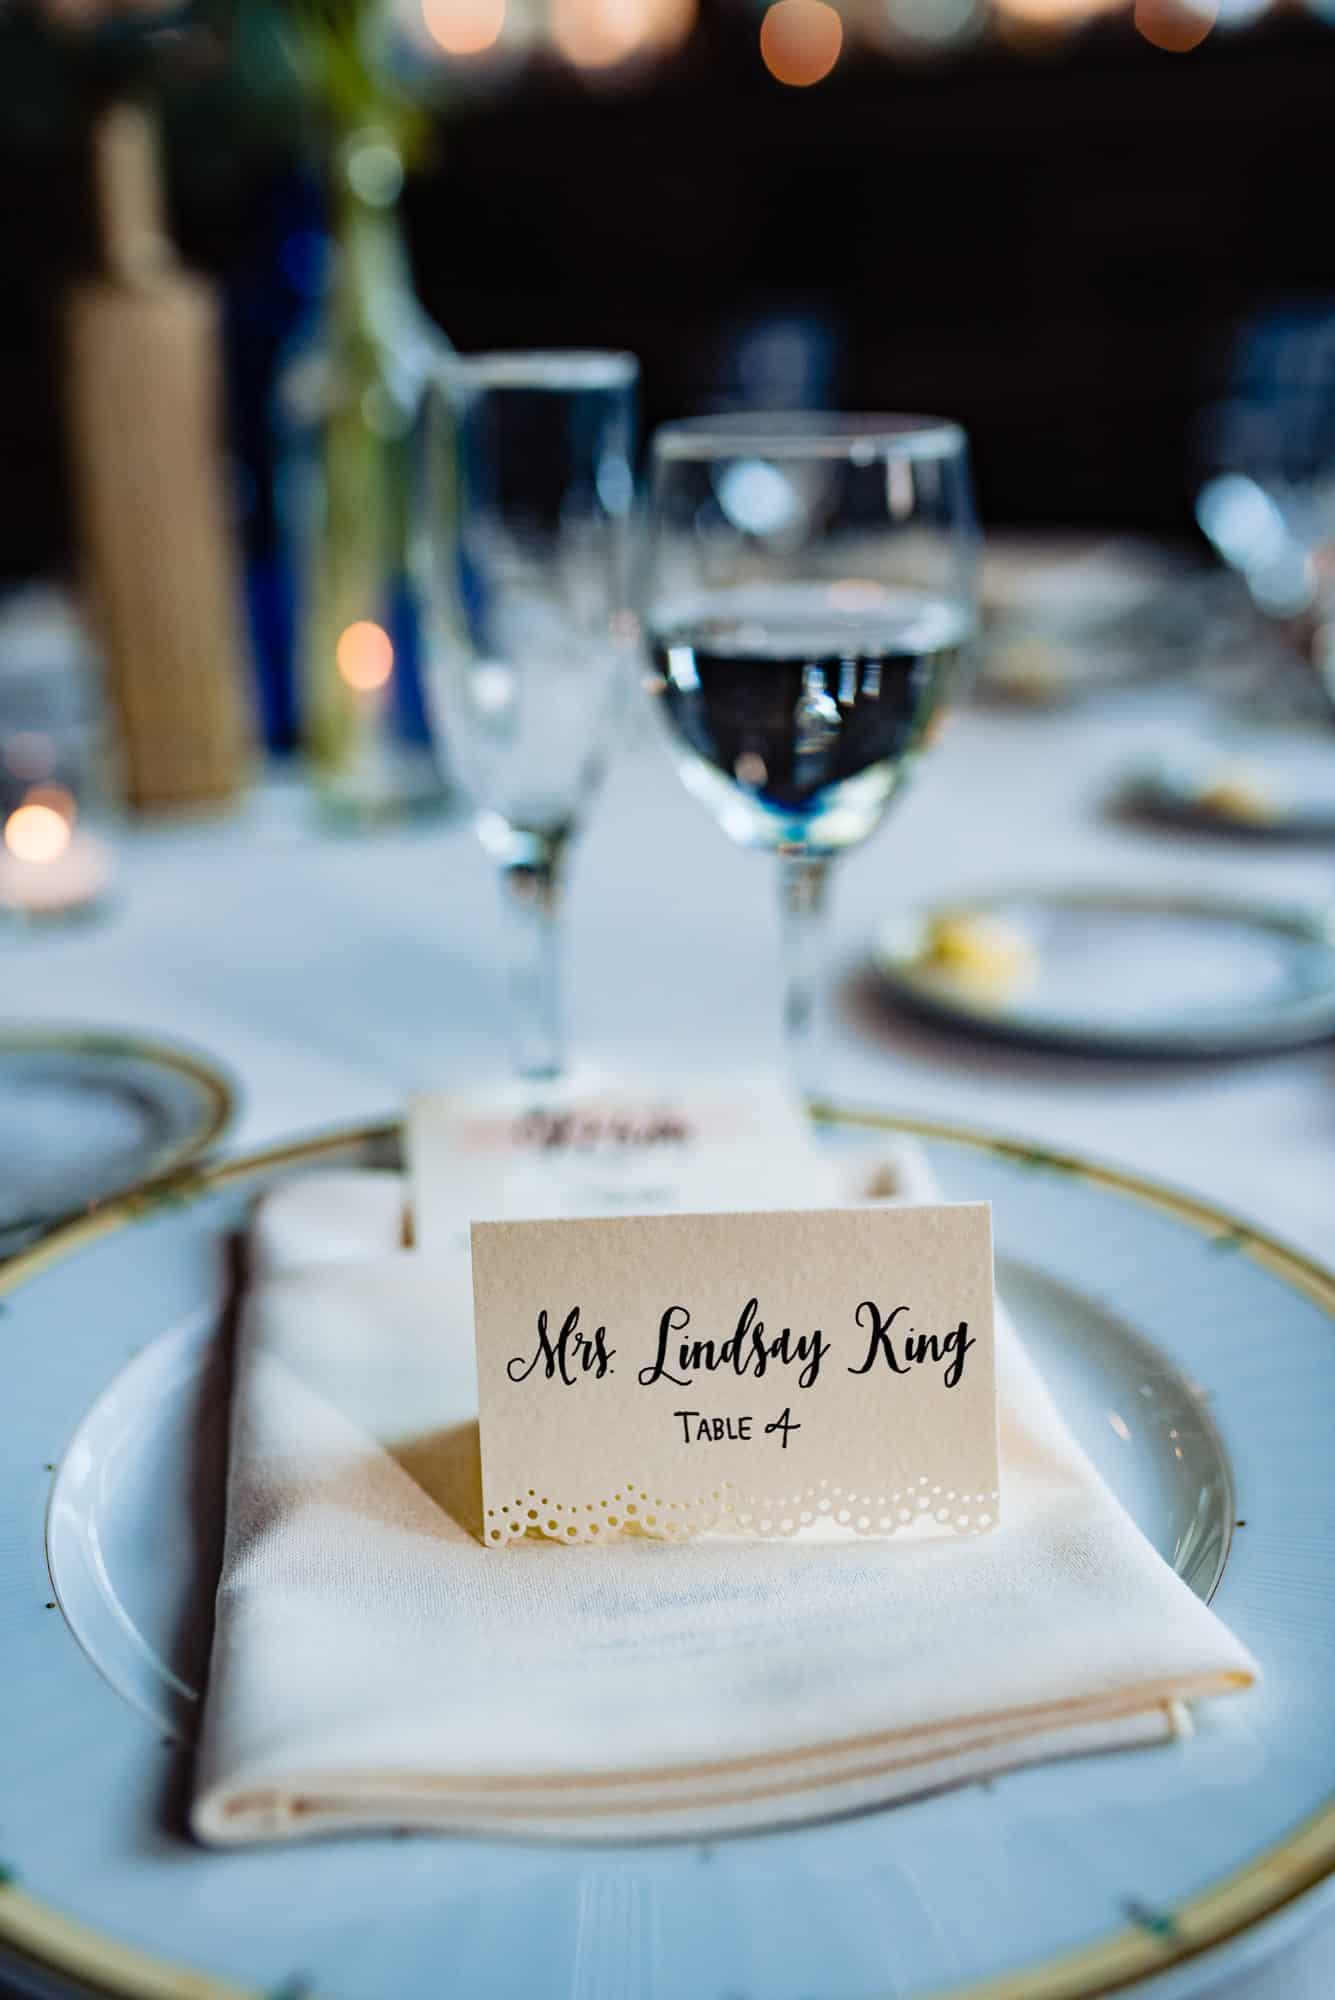 wedding accessories, place setting with name of guest